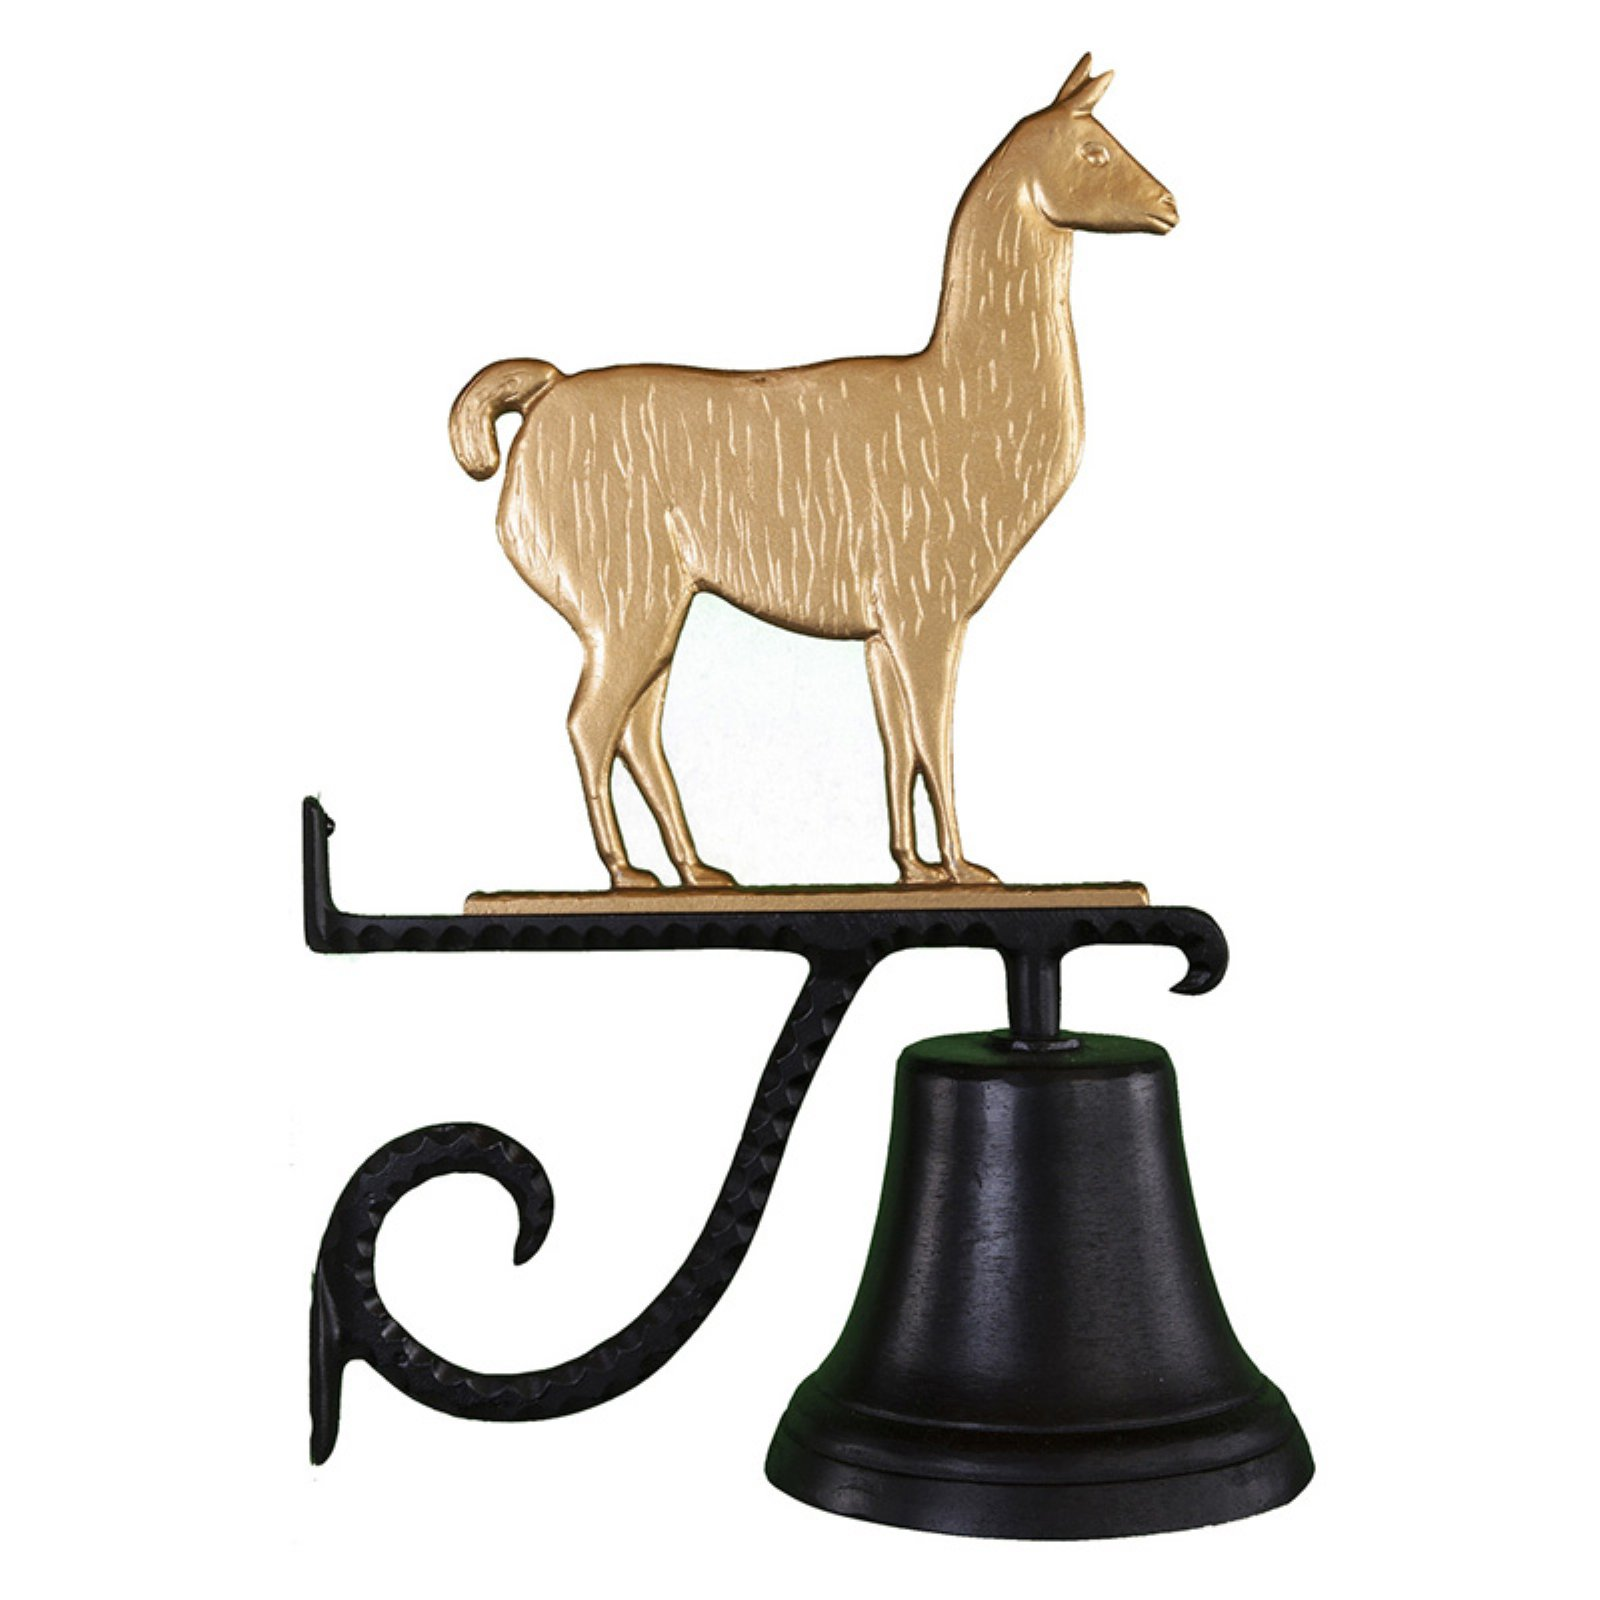 Cast Bell with Gold Llama Ornament